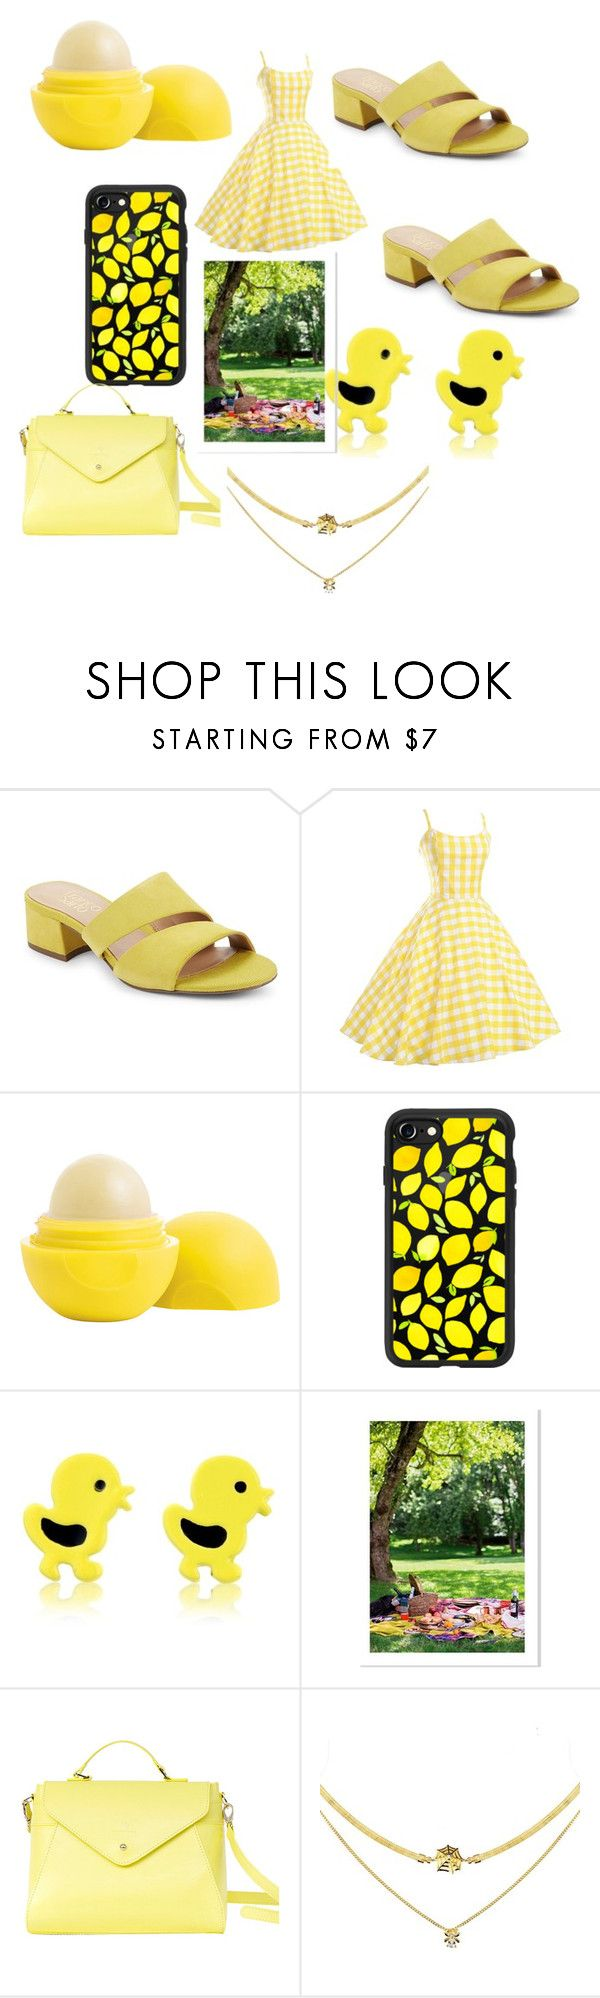 """Life Is A Picnic (Picnic Date Outfit) 💏"" by theperfectstorm ❤ liked on Polyvore featuring Franco Sarto, Eos, Casetify and Paperthinks"